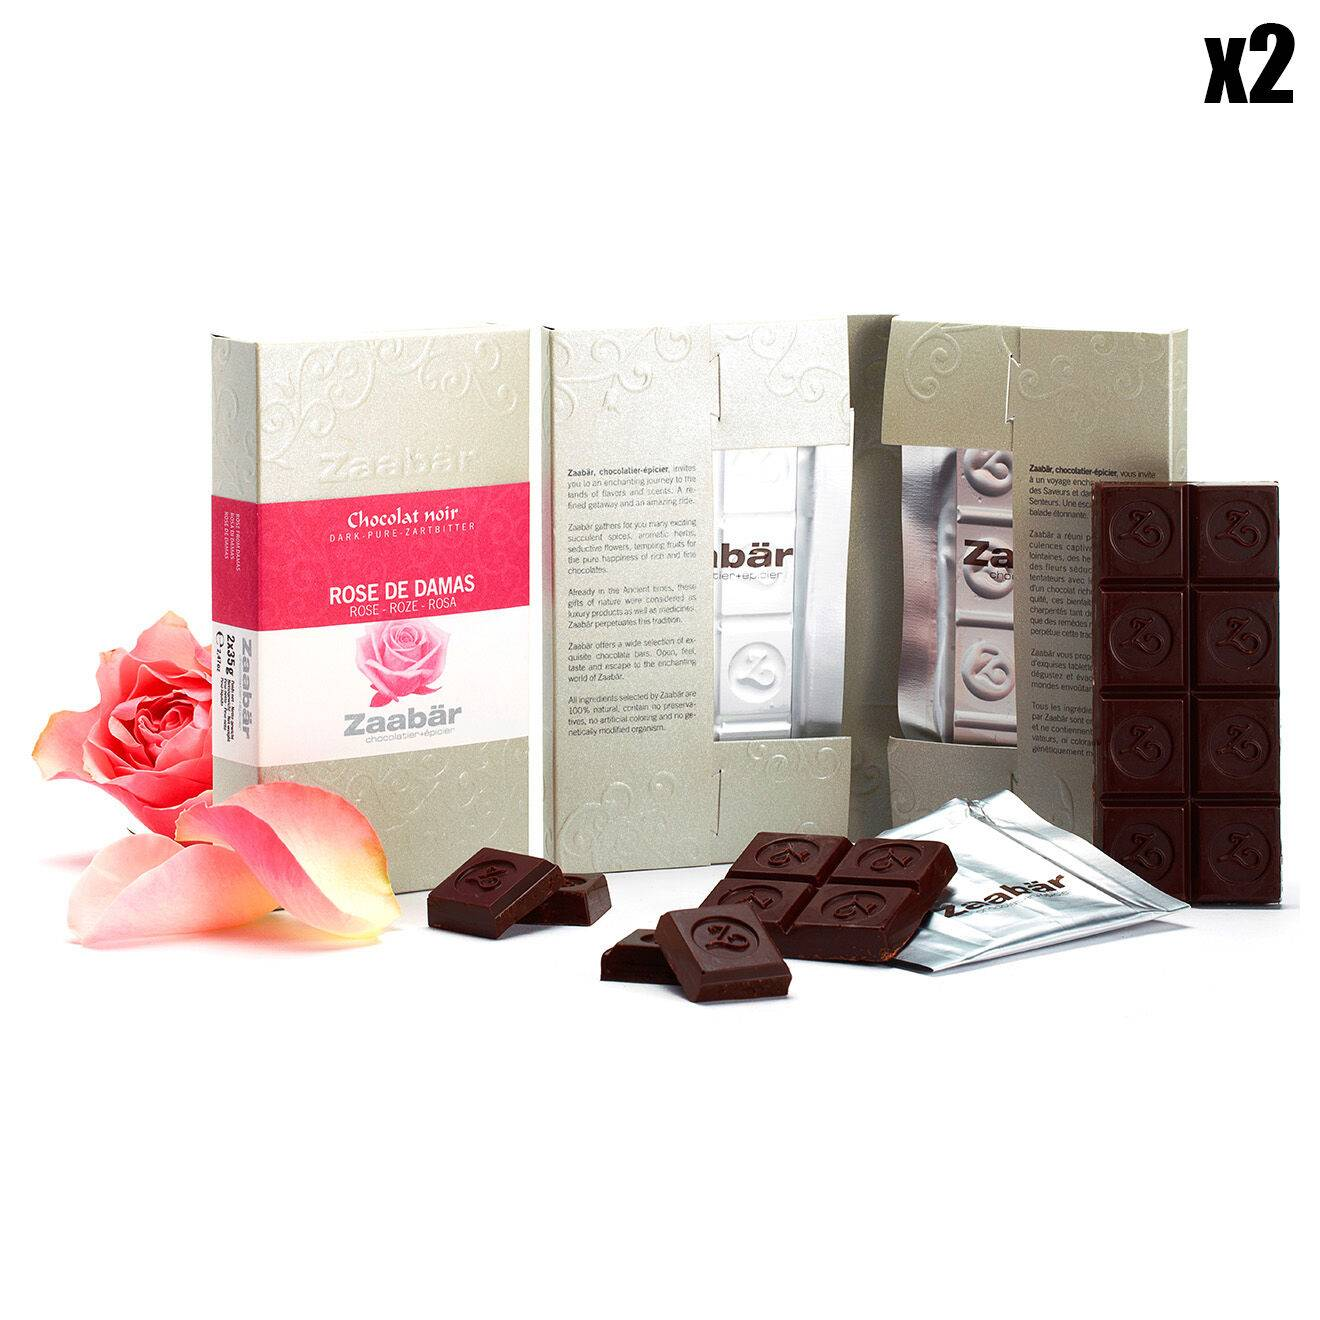 Zaabar - 2 Lots de 2 Tablettes Duo Rose de Damas 4x35g